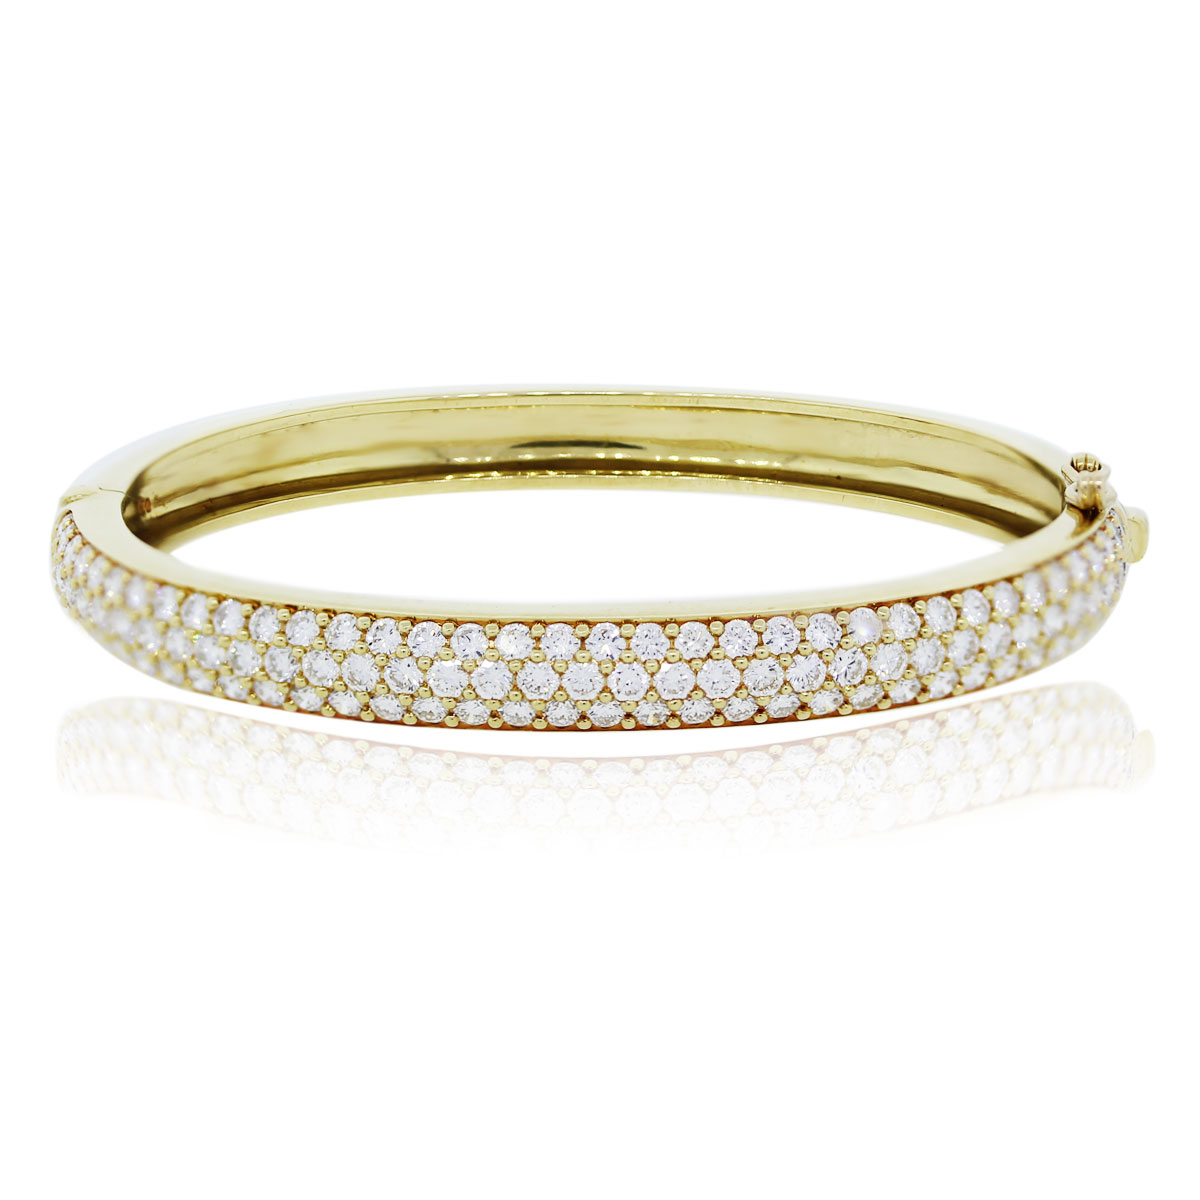 You are viewing this 18kt Yellow Gold Round Cut Diamond Bangle Bracelet!